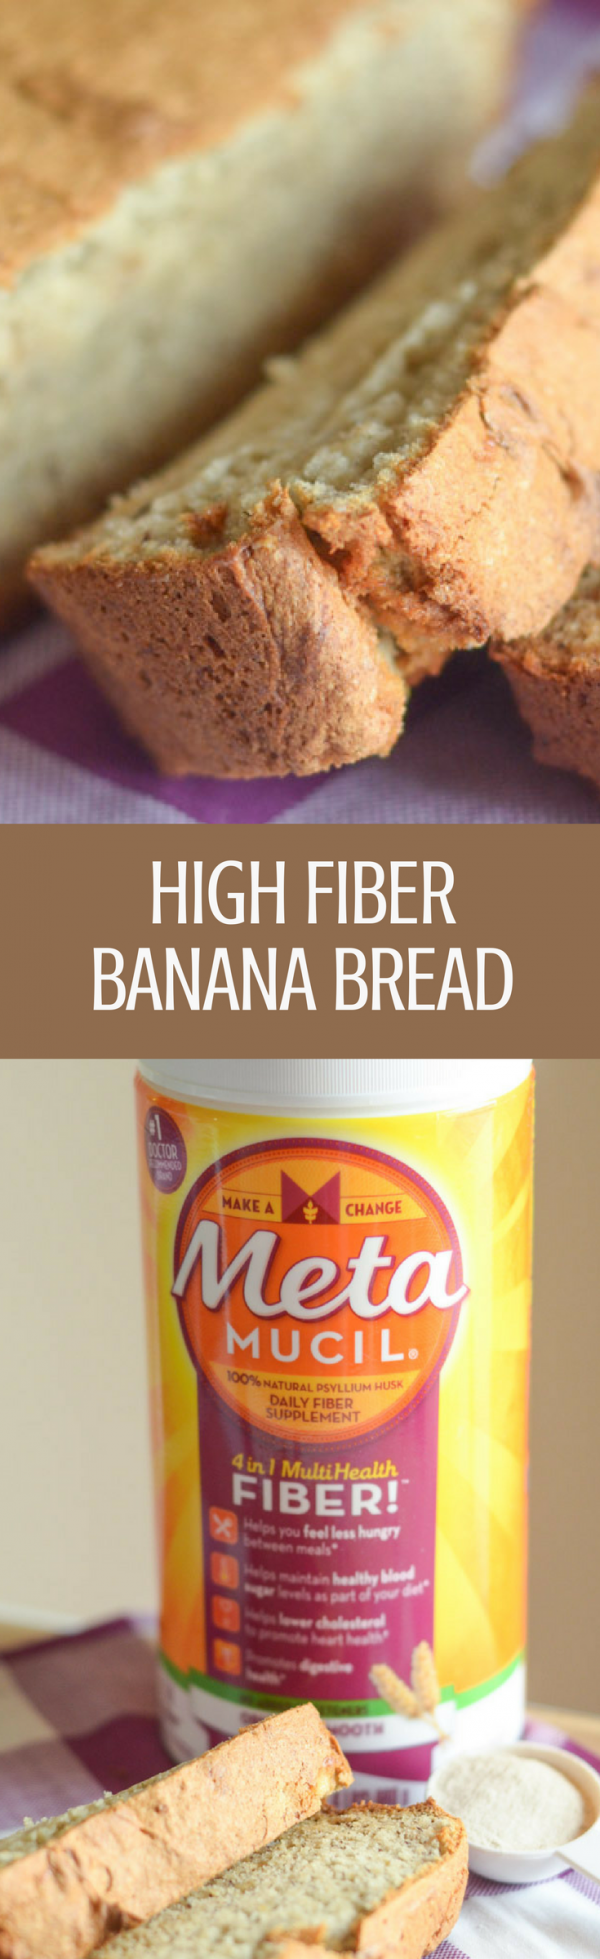 High Fiber Banana Bread